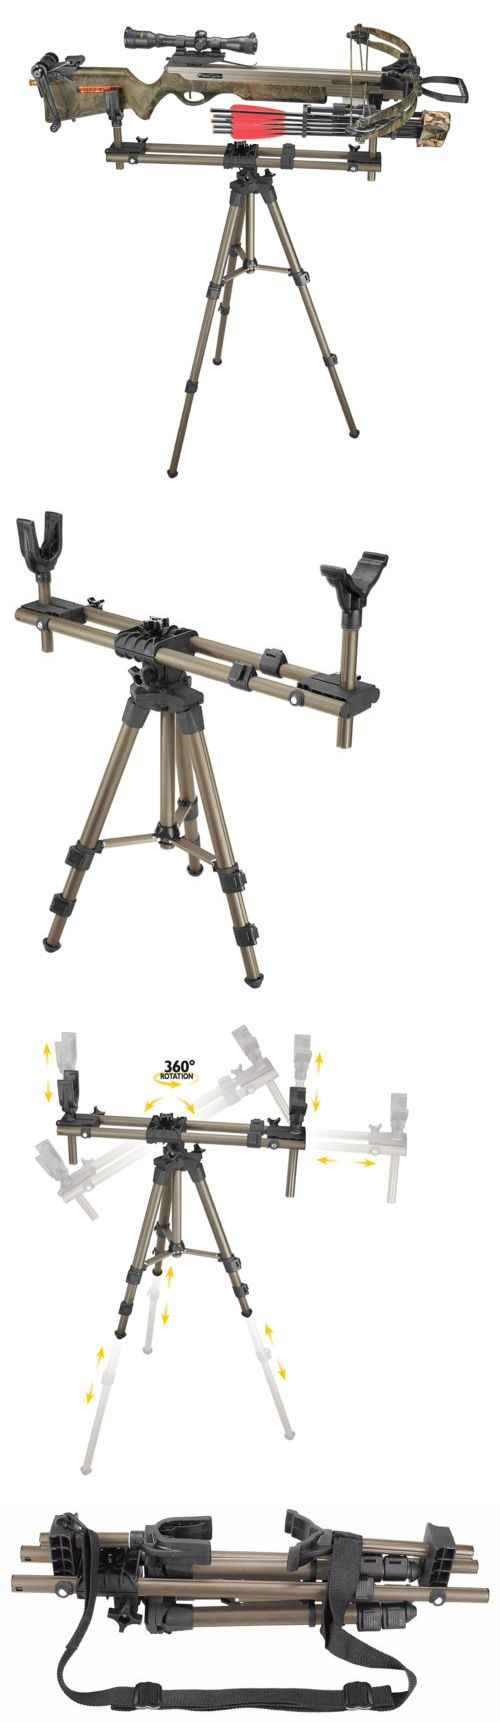 Benches and Rests 177887: Gun Shooting Rest Tripod Hunting Gun Crossbow Rifle Sniper Balance Pod Pivot -> BUY IT NOW ONLY: $97.91 on eBay! http://riflescopescenter.com/category/leupold-riflescope-reviews/